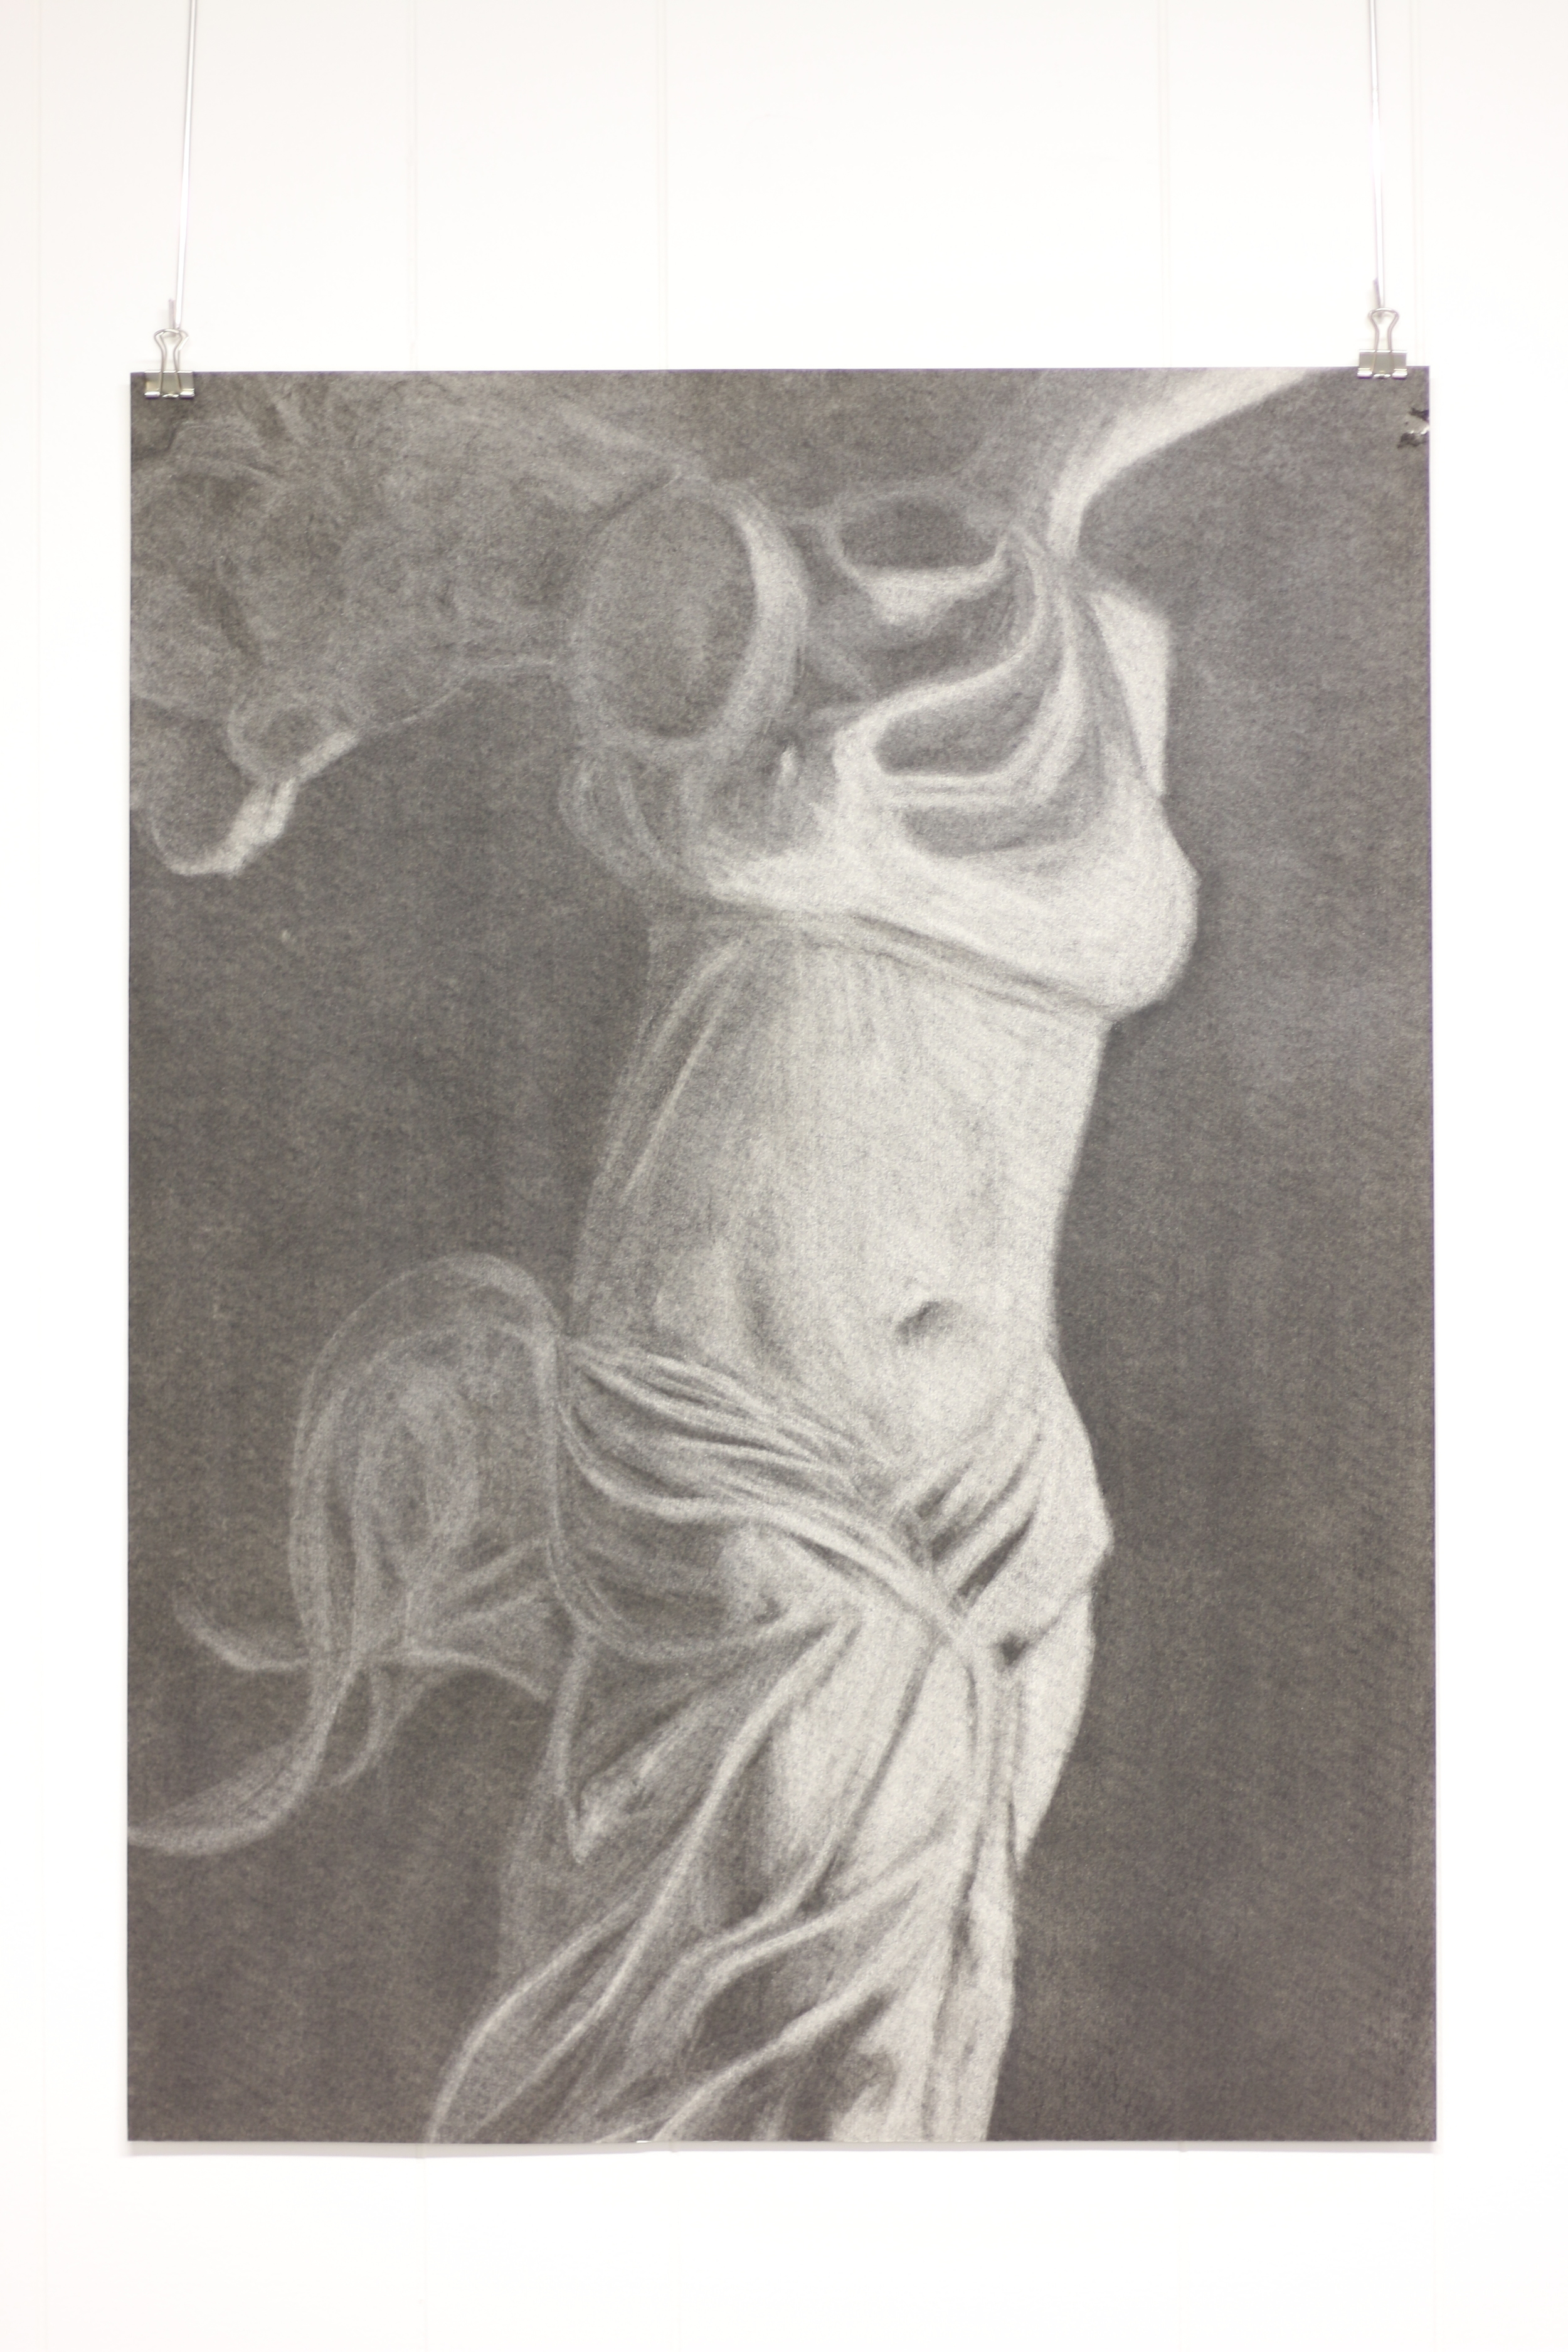 Winged Victory, 1999, Charcoal (Erased Tone), Art 131